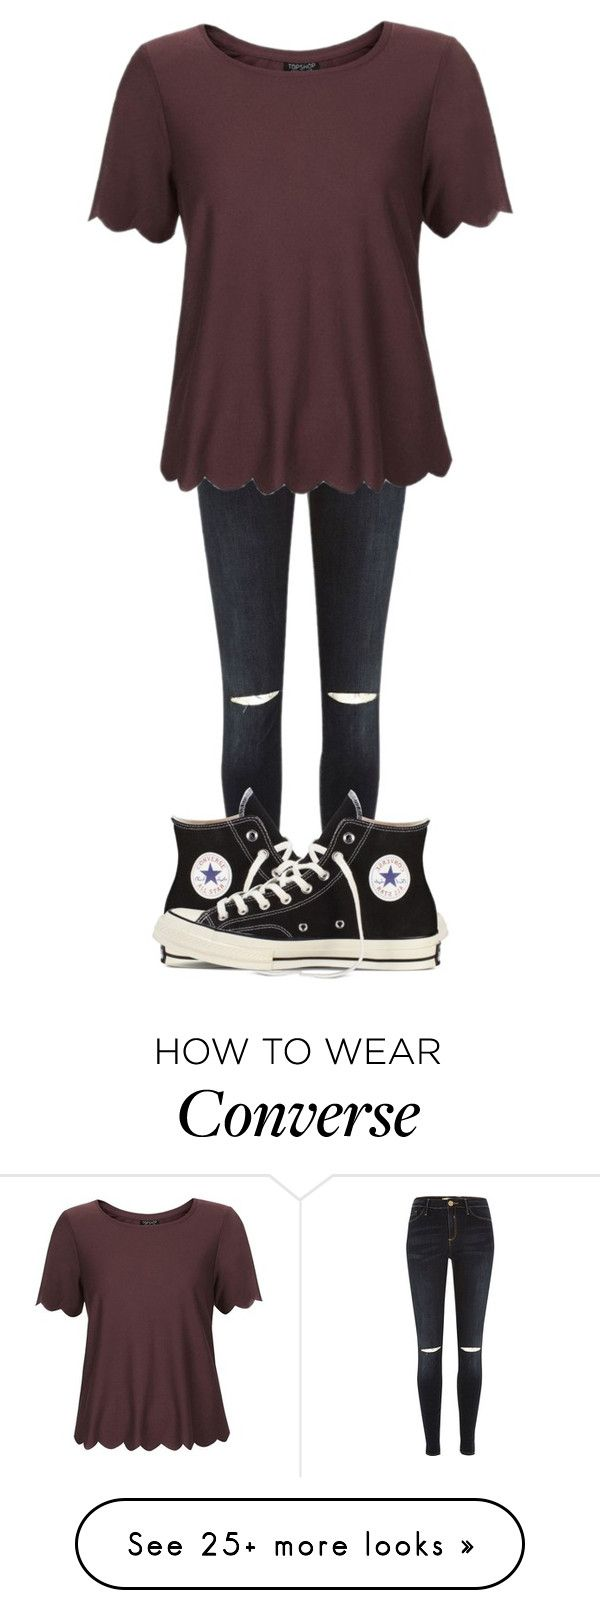 """•Casual•"" by thisisvintage on Polyvore featuring River Island, Topshop and Converse"